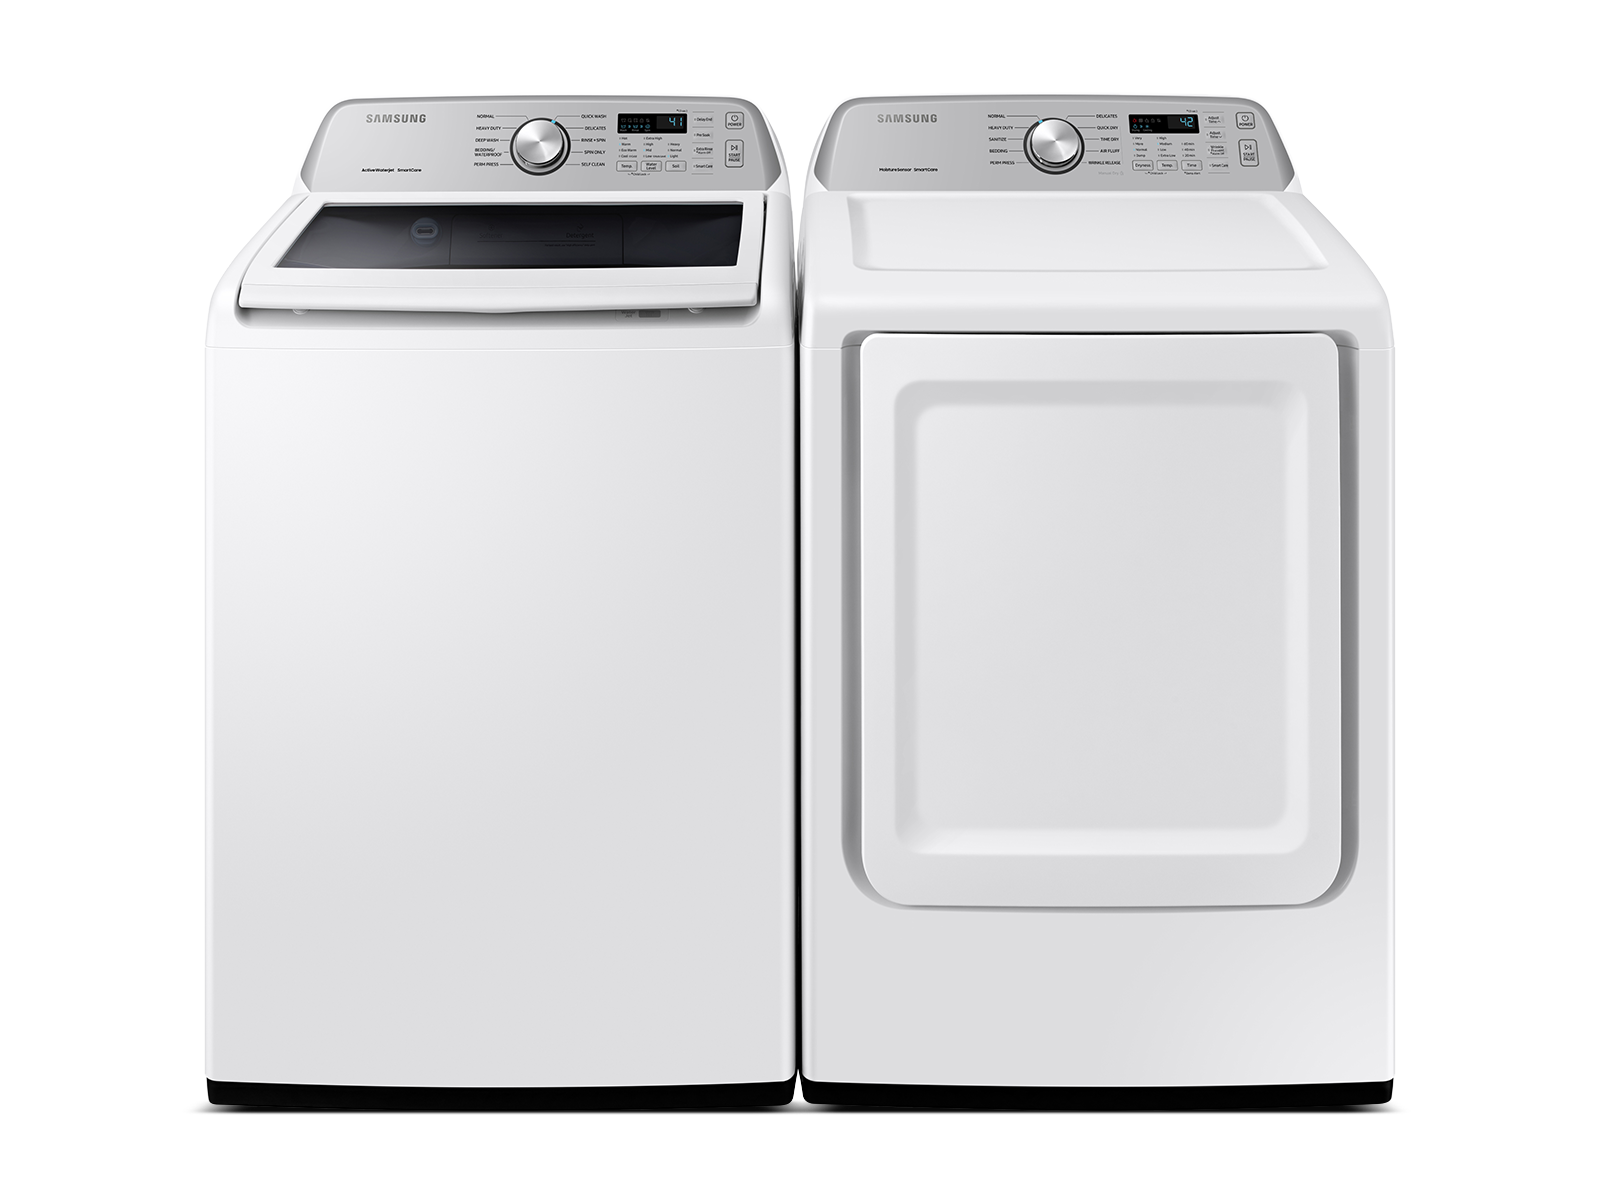 Samsung coupon: Samsung Top Load Washer & Dryer Set with Active WaterJet and Sensor Dry in White(BNDL-1603923407750)